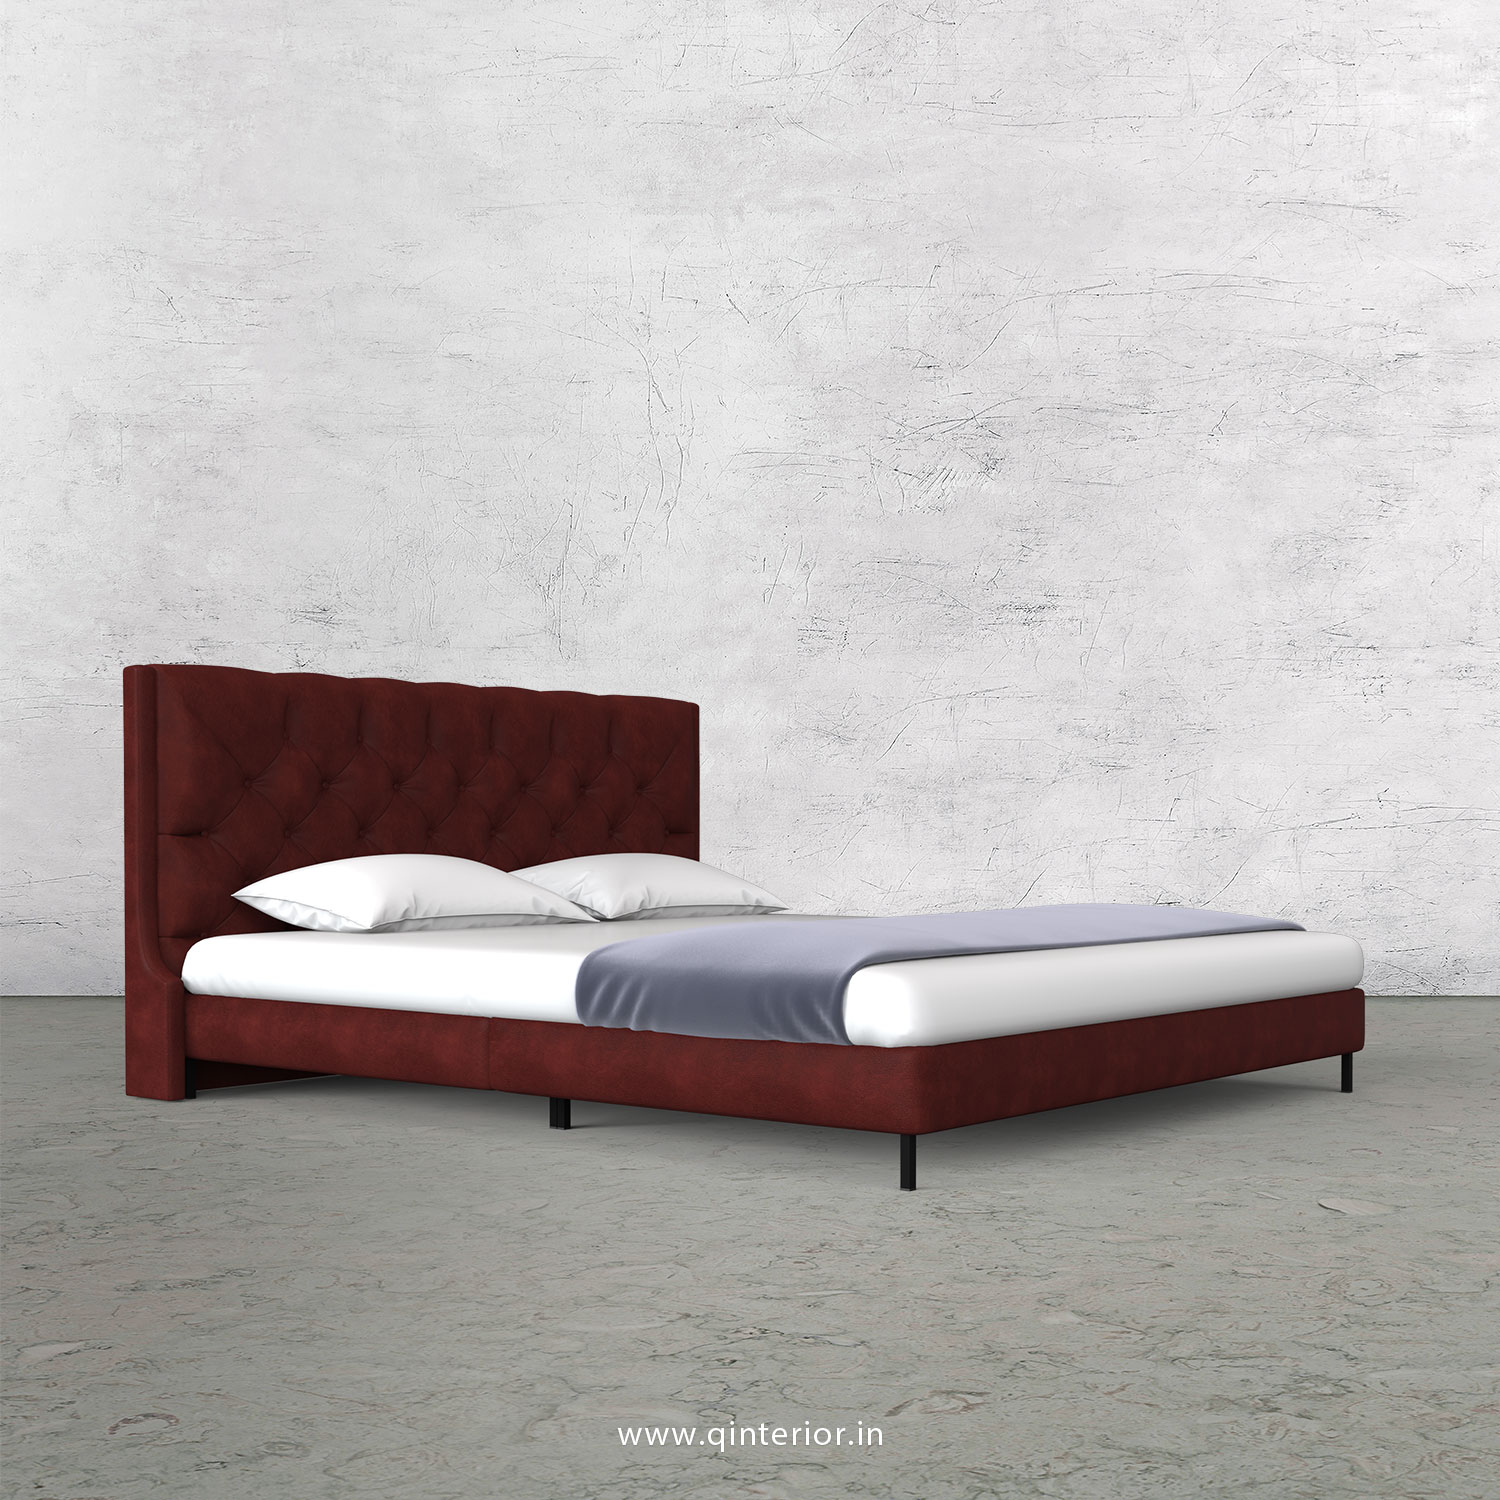 Scorpius Queen Size Bed with Fab Leather Fabric - QBD003 FL17